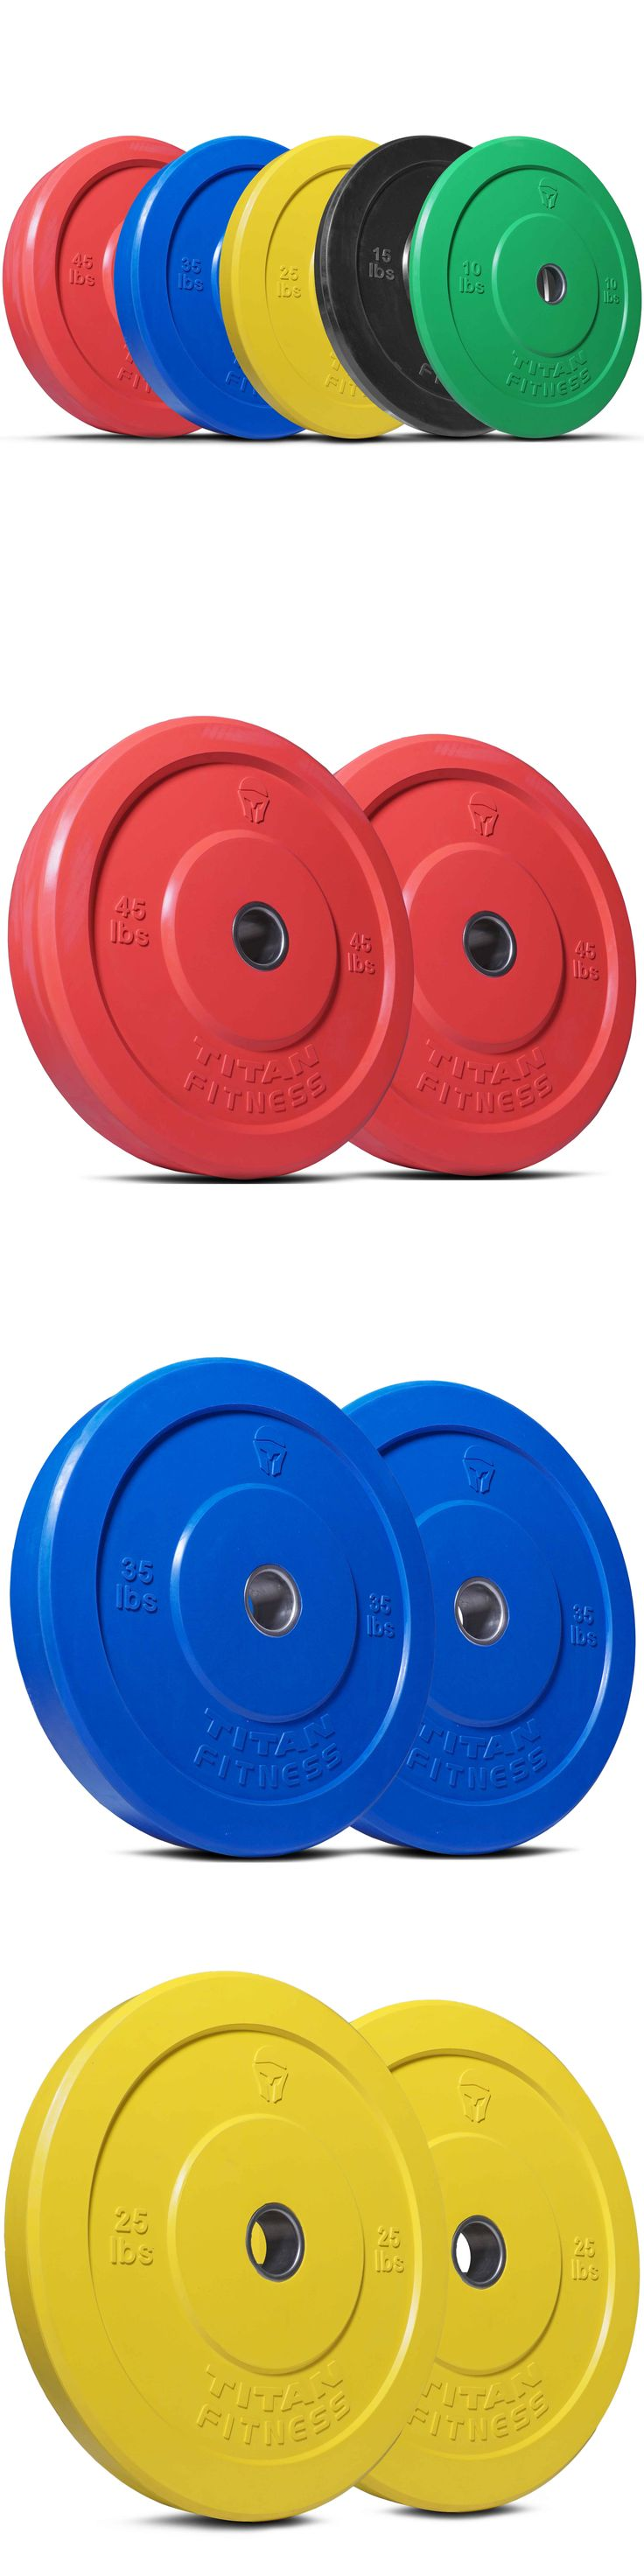 Weight Plates 179817: Titan 260 Lb Set Of Olympic Bumper Plates Benchpress Strength Training Power Wod BUY IT NOW ONLY: $410.0